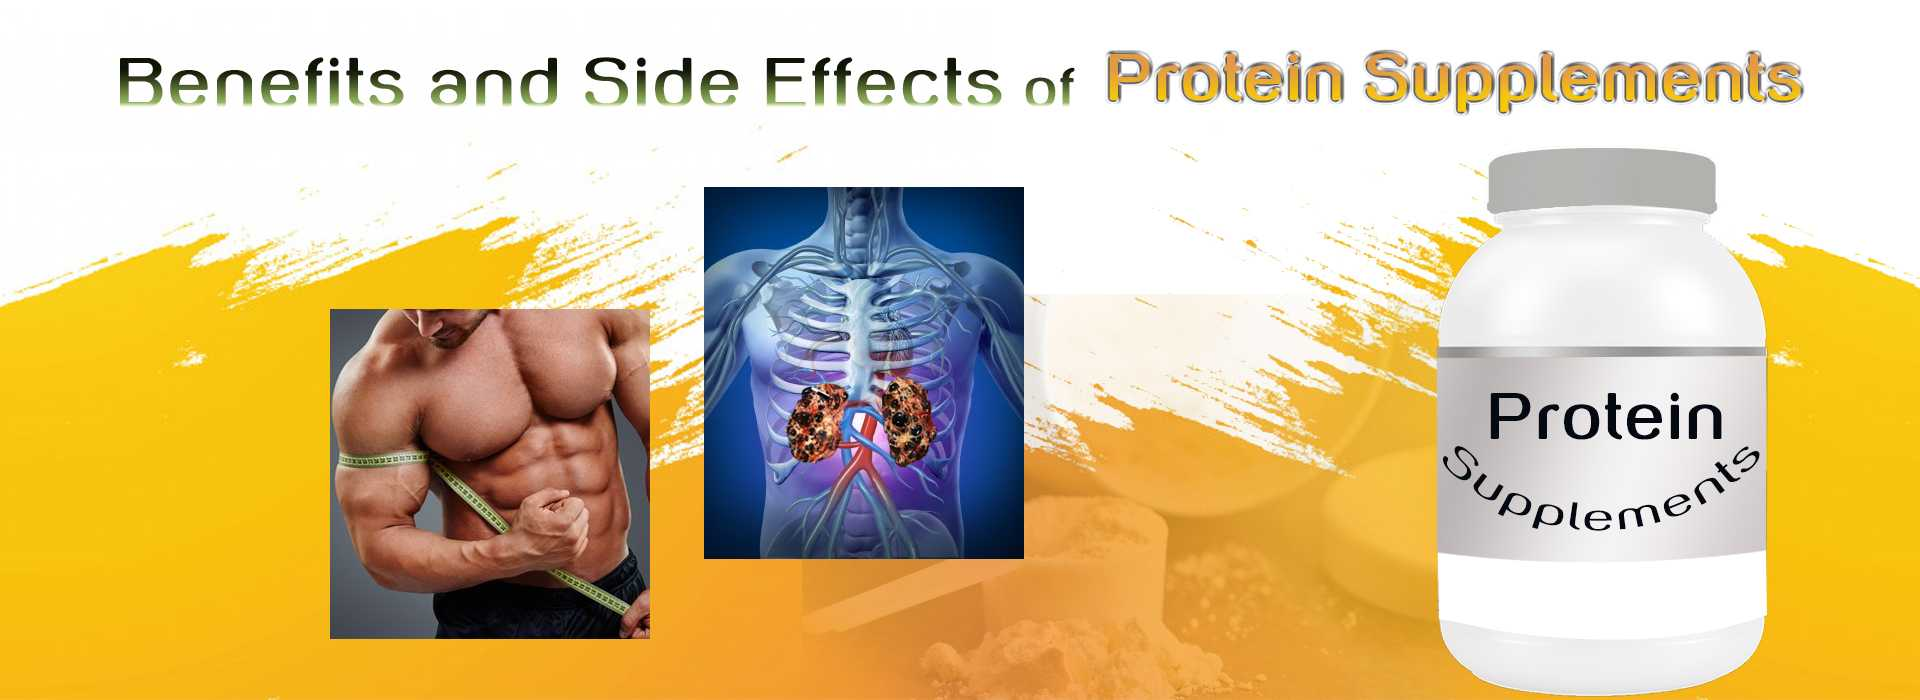 Protein supplements side effects